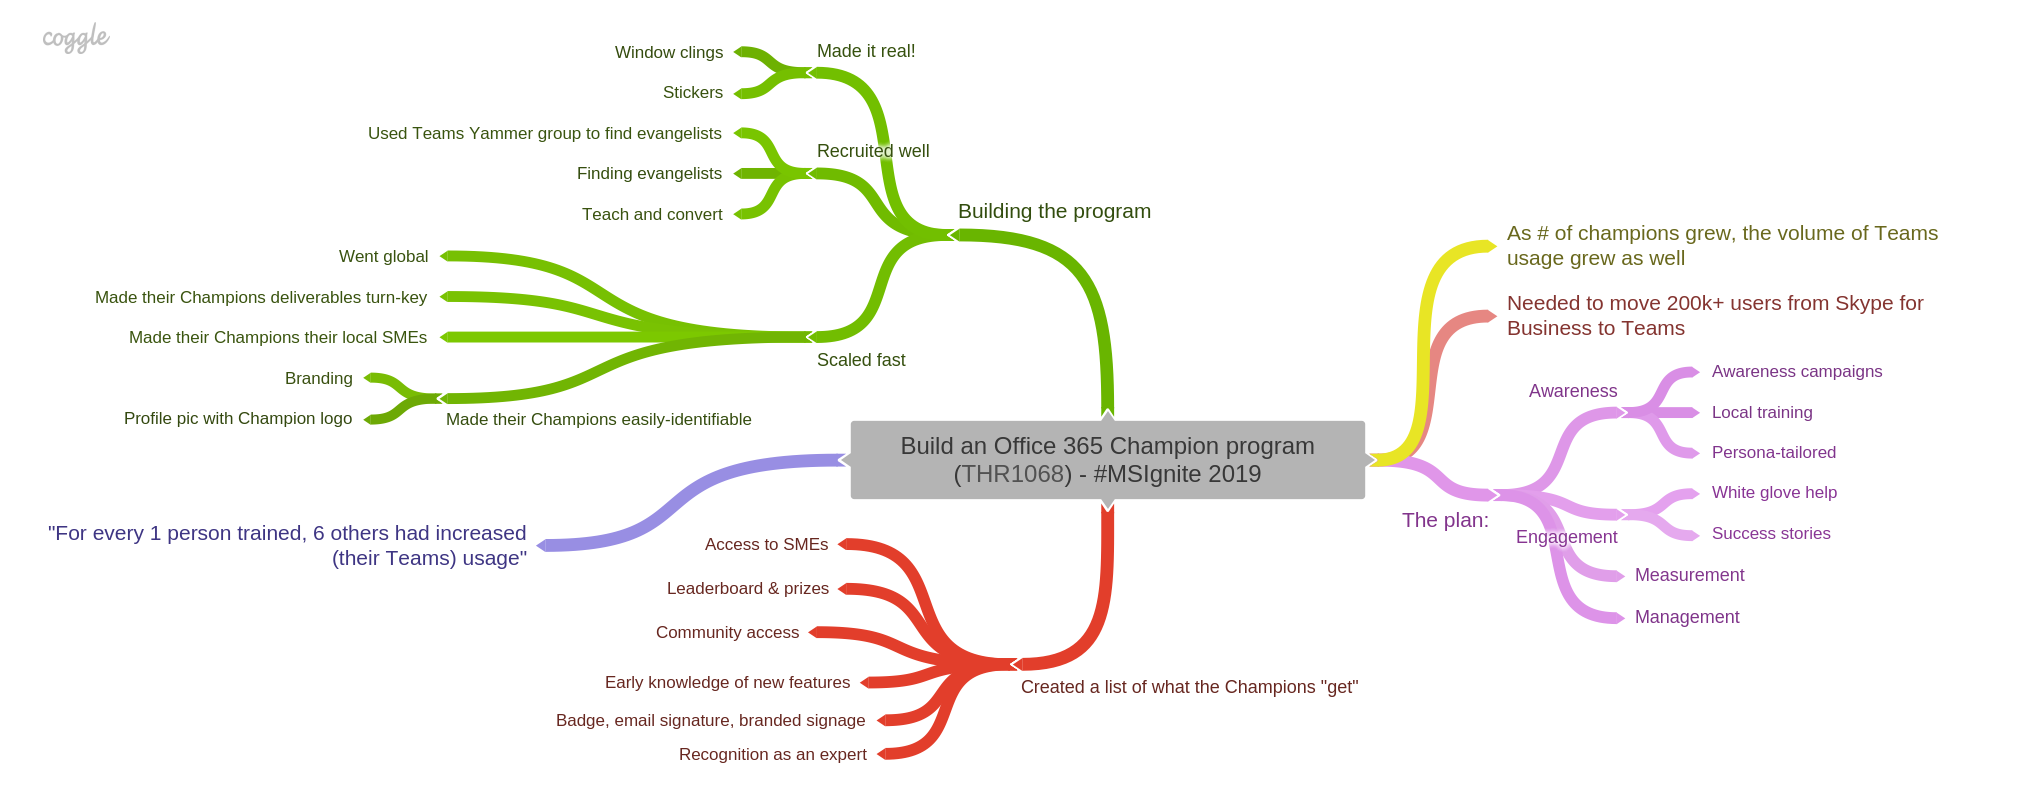 Build_an_Office_365_Champion_program_THR1068_-_MSIgnite_2019.png